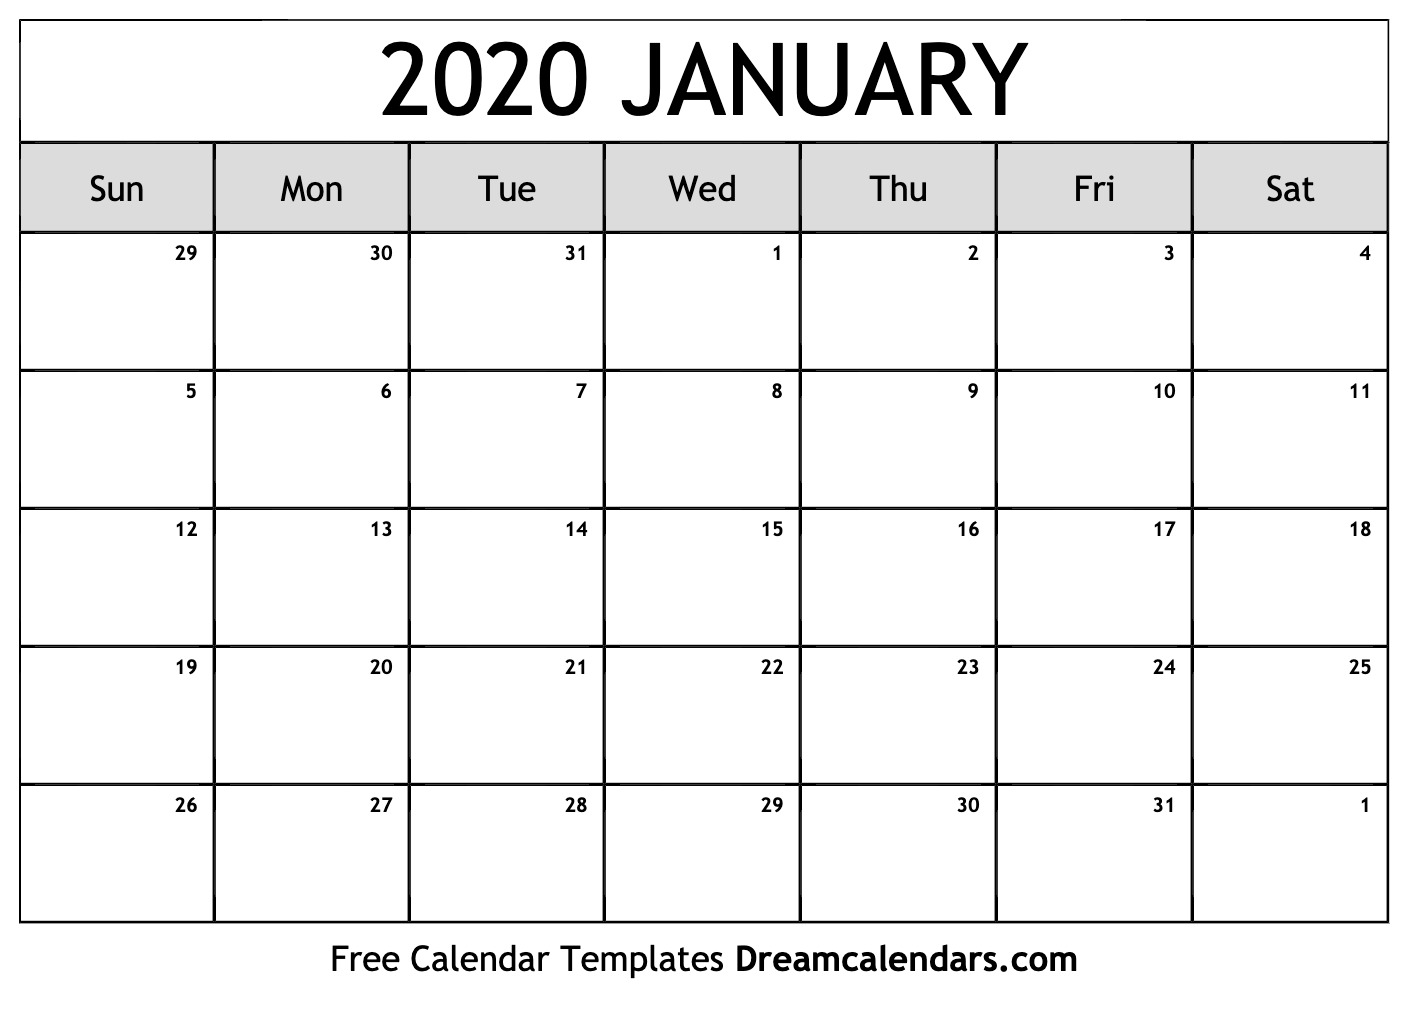 Calendar Jan 2020 Printable Printable January 2020 Calendar